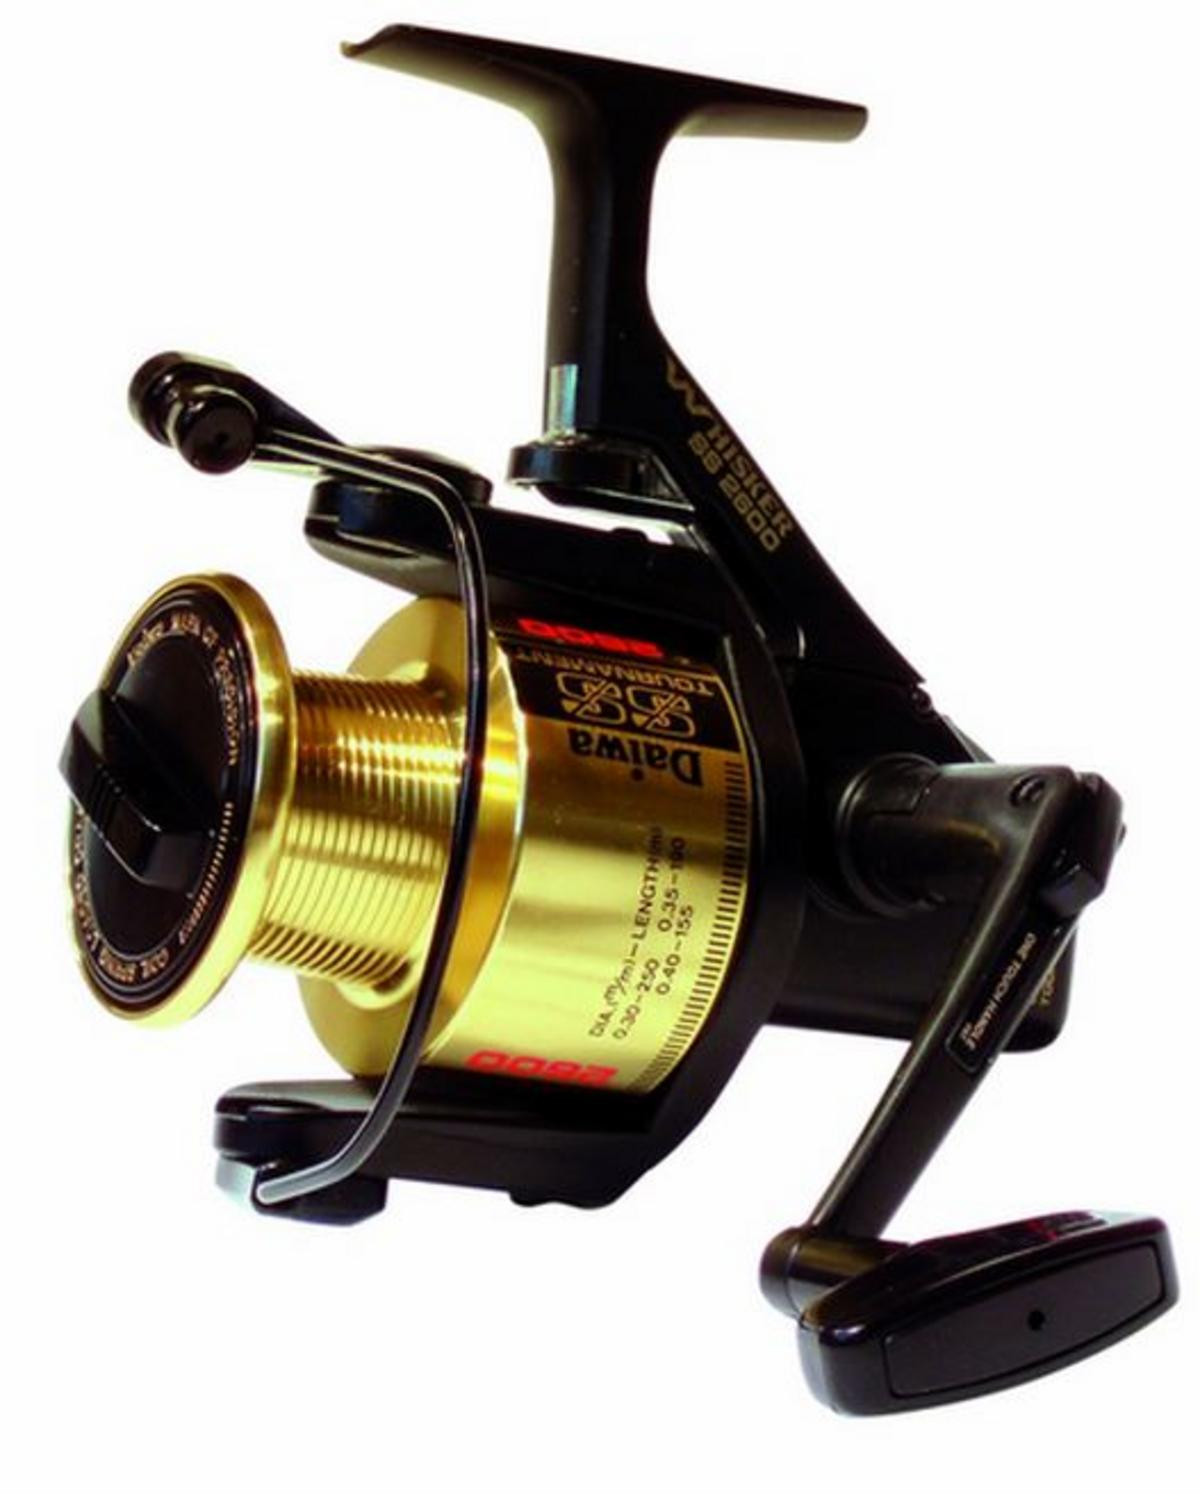 New Daiwa Tournament SS2600 Whisker Specialist Carp Fishing Reel - SS2600